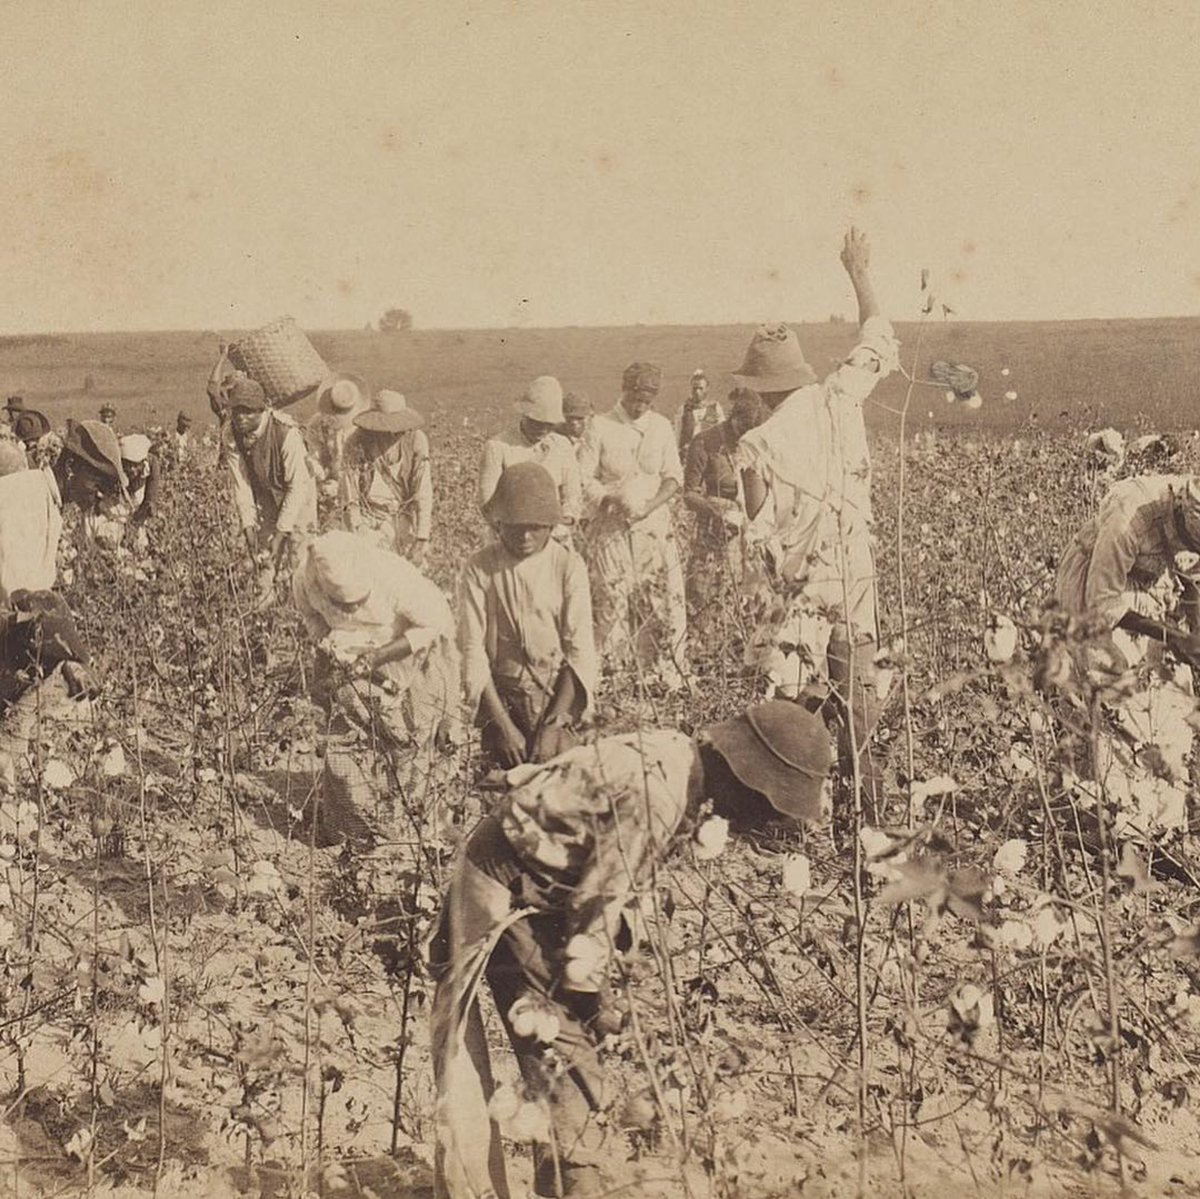 Today in 1865, the 13th Amendment to the Constitution was ratified, formally abolishing slavery in the United States.  Via:  @nmaahc #blackhistory #apeoplesjourney<br>http://pic.twitter.com/j2svBcLsQy